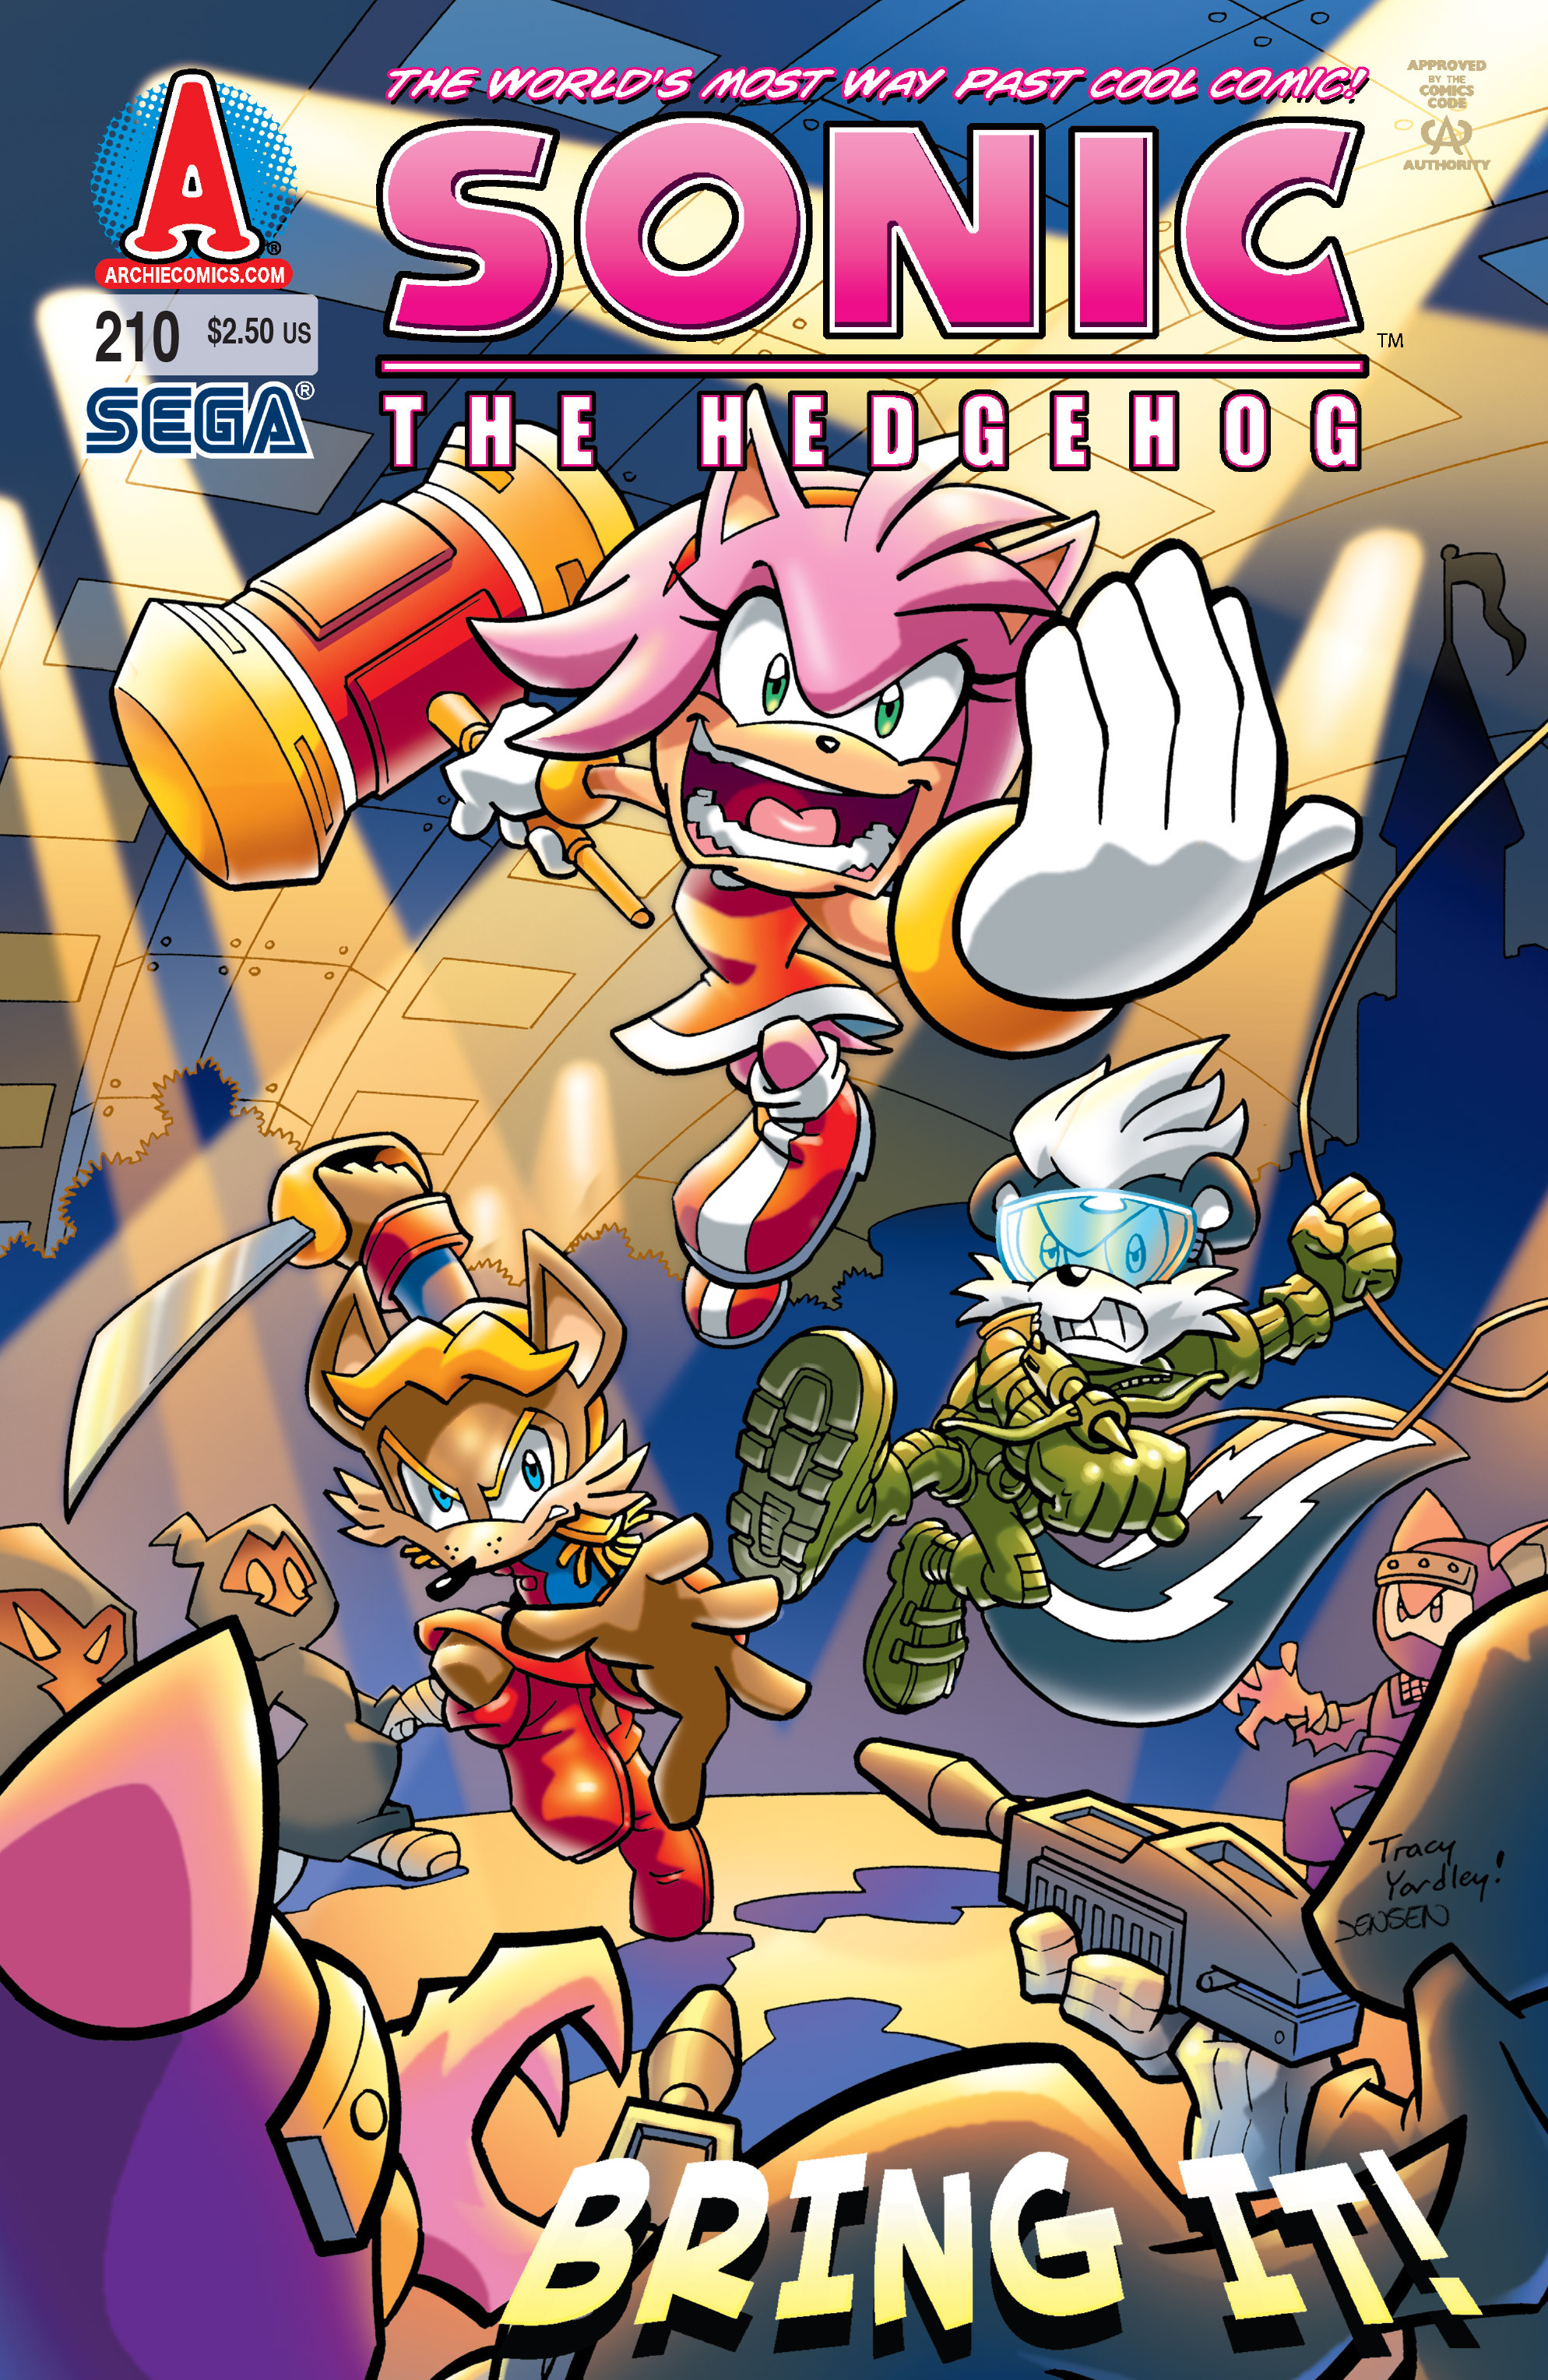 Archie Sonic The Hedgehog Issue 210 Mobius Encyclopaedia